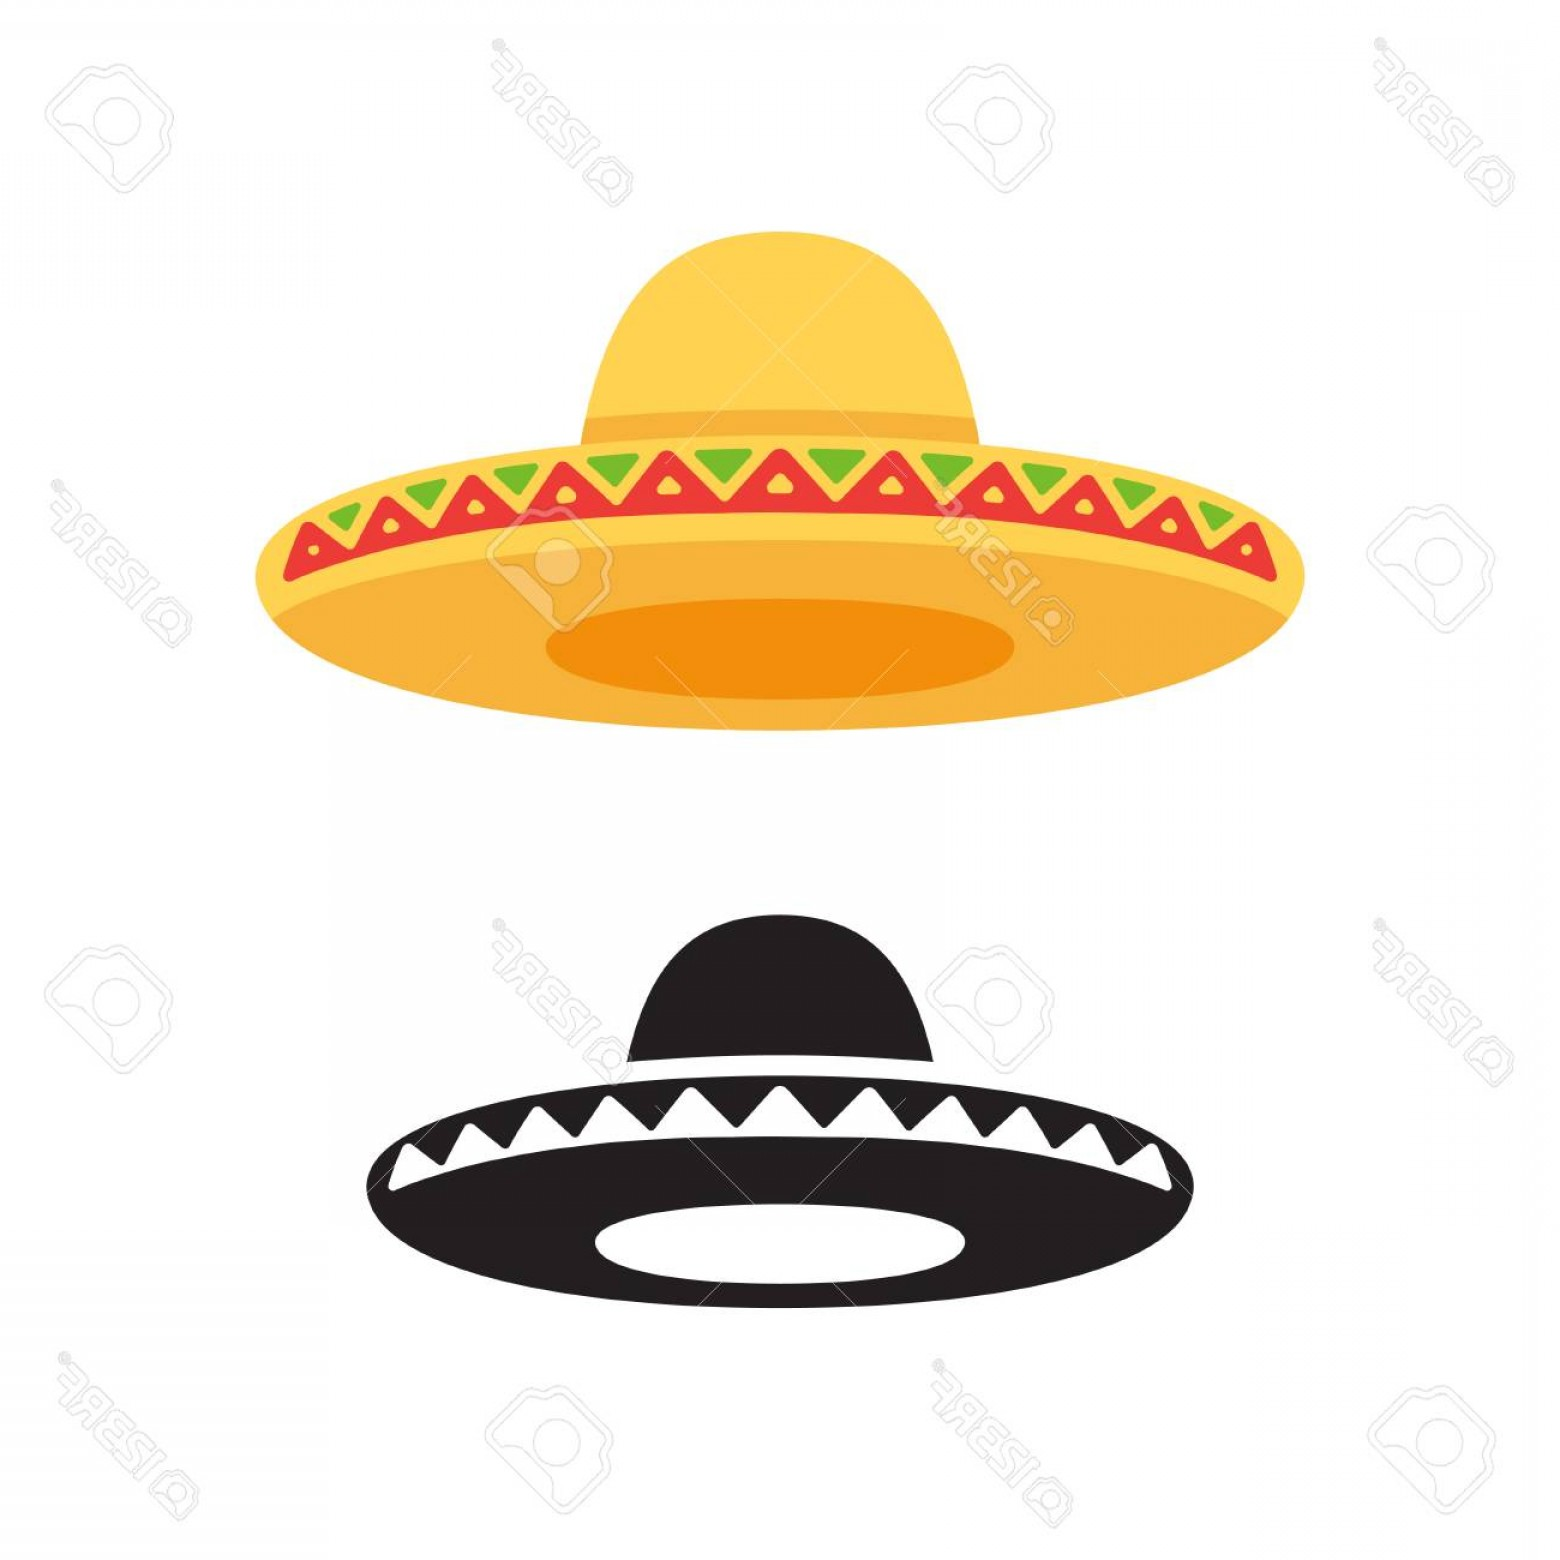 Sombrero Hat Vector: Photostock Vector Sombrero Mexican Hat Vector Icon Or Logo In Color And Black And White Flat Vector Style Illustration